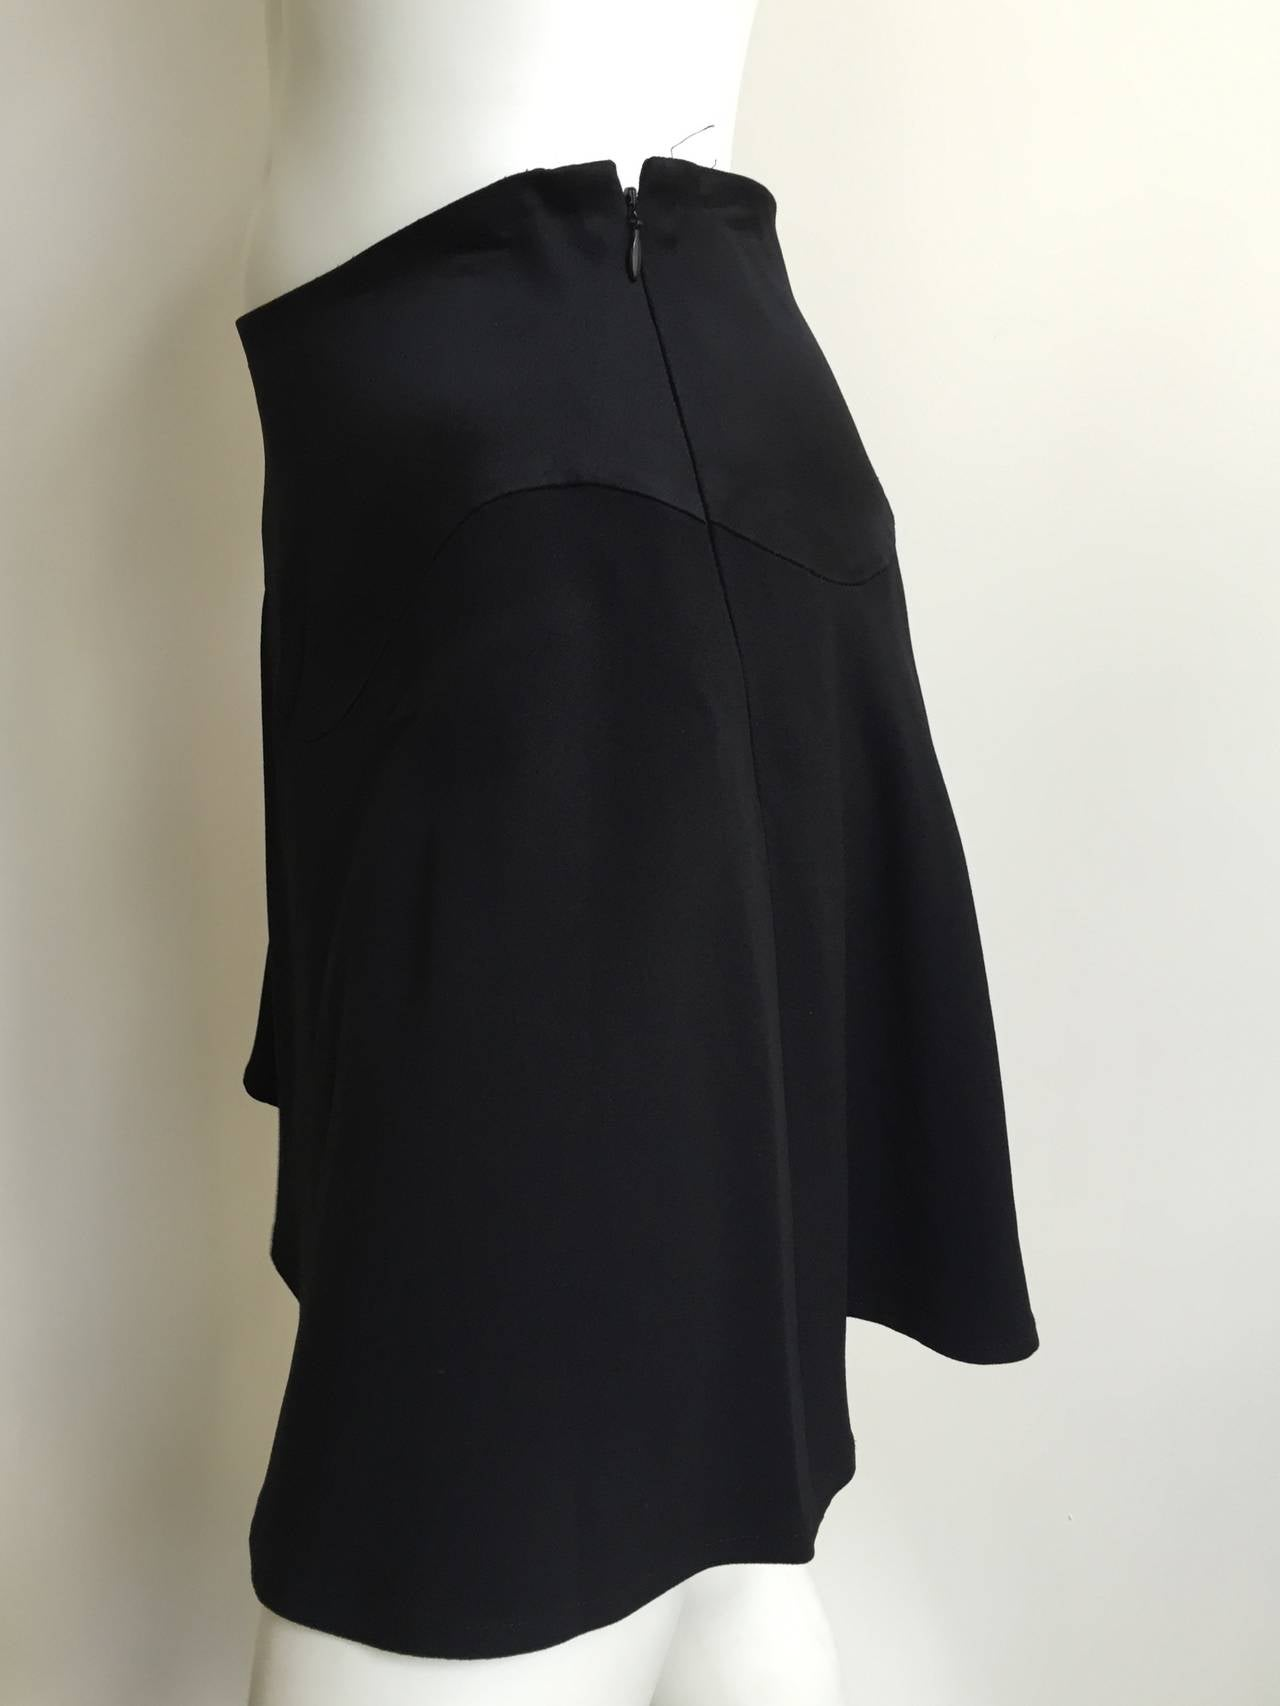 Moschino Cheap and Chic black short sexy skirt size 6. 4